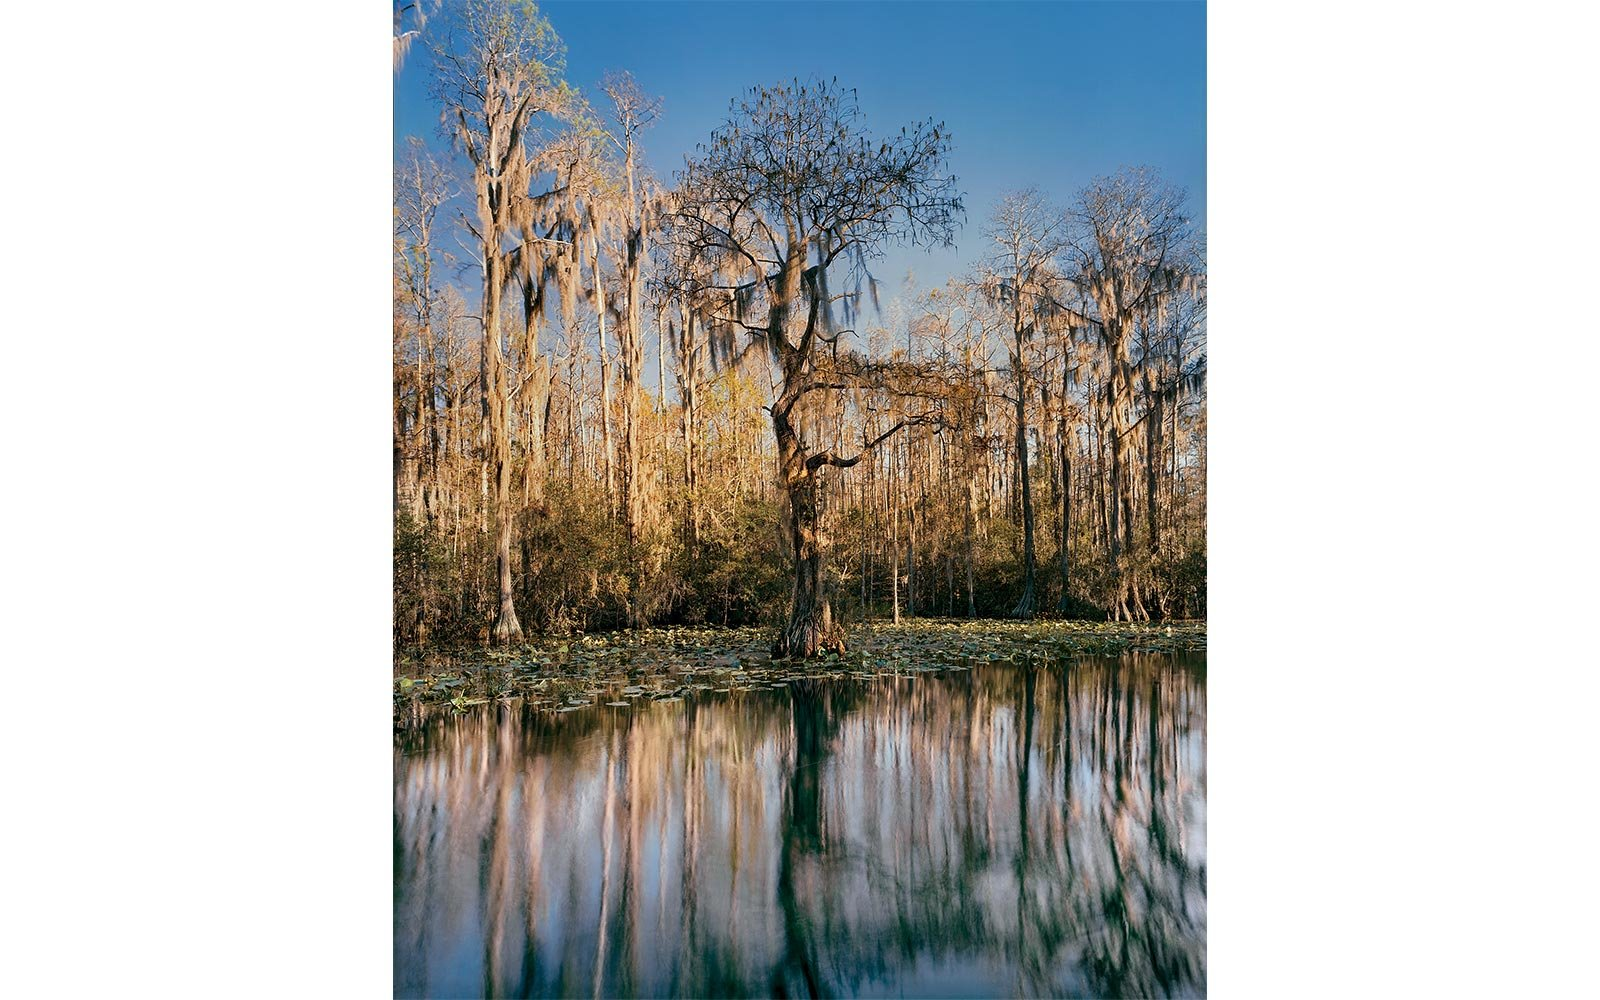 Okenofee Swamp in Georgia